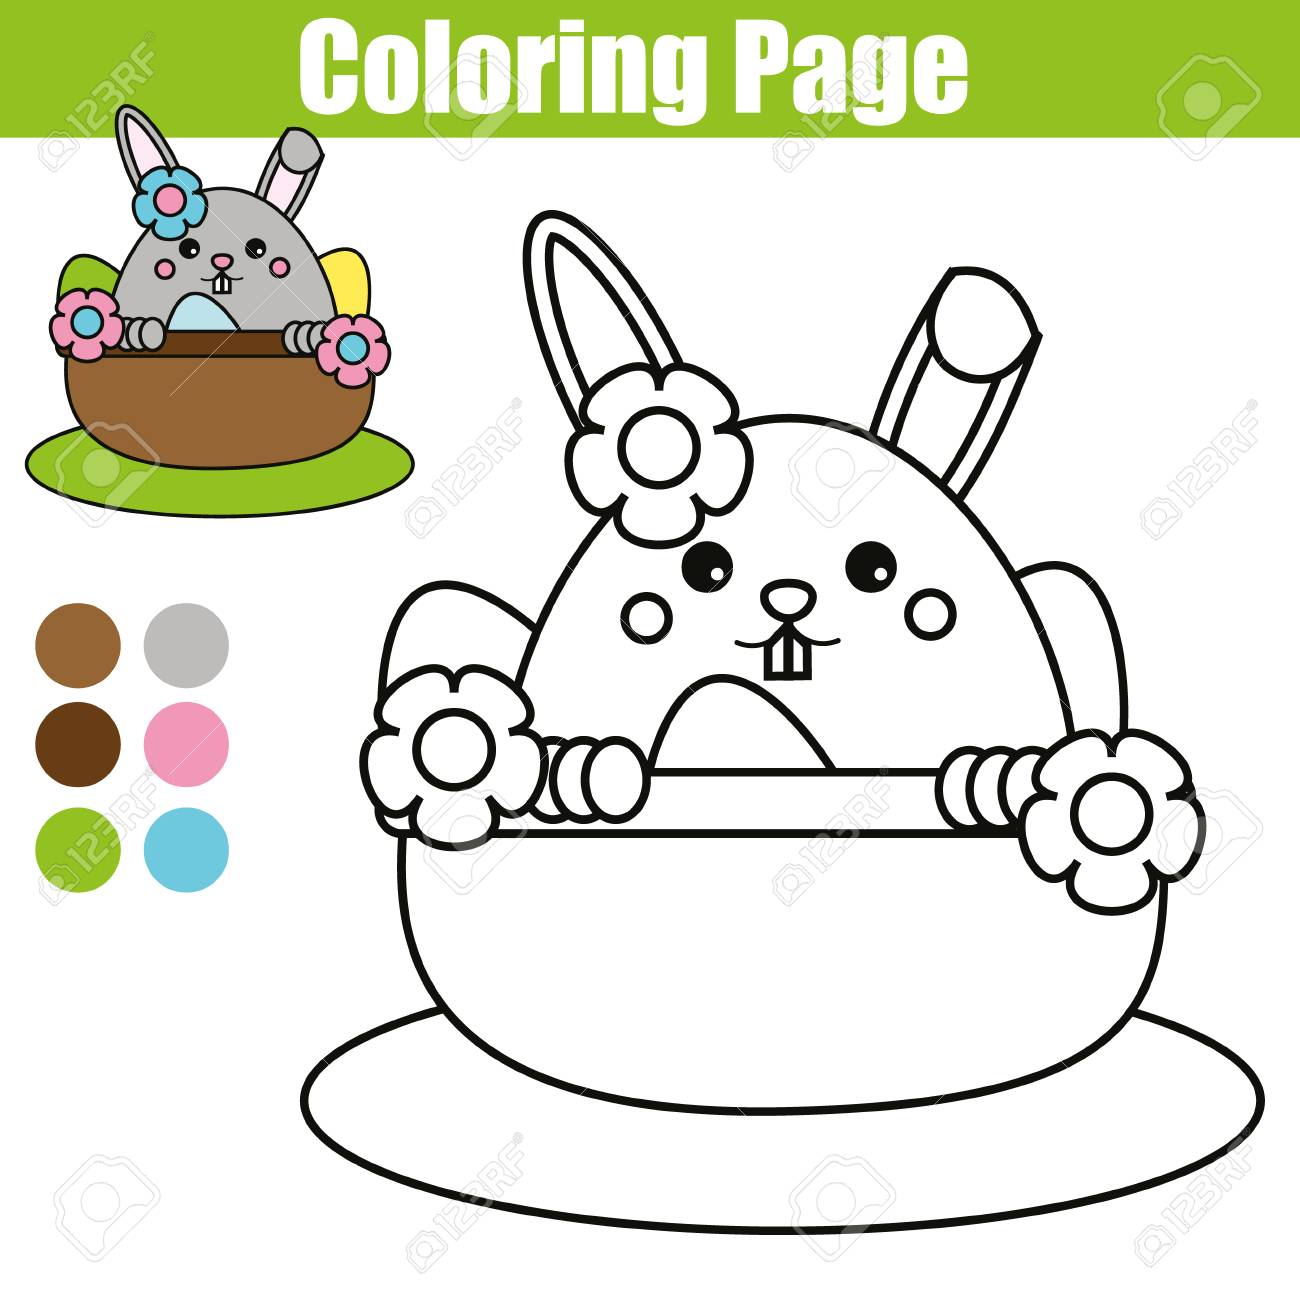 1300x1300 Coloring Page With Easter Bunny Character. Printable Worksheet